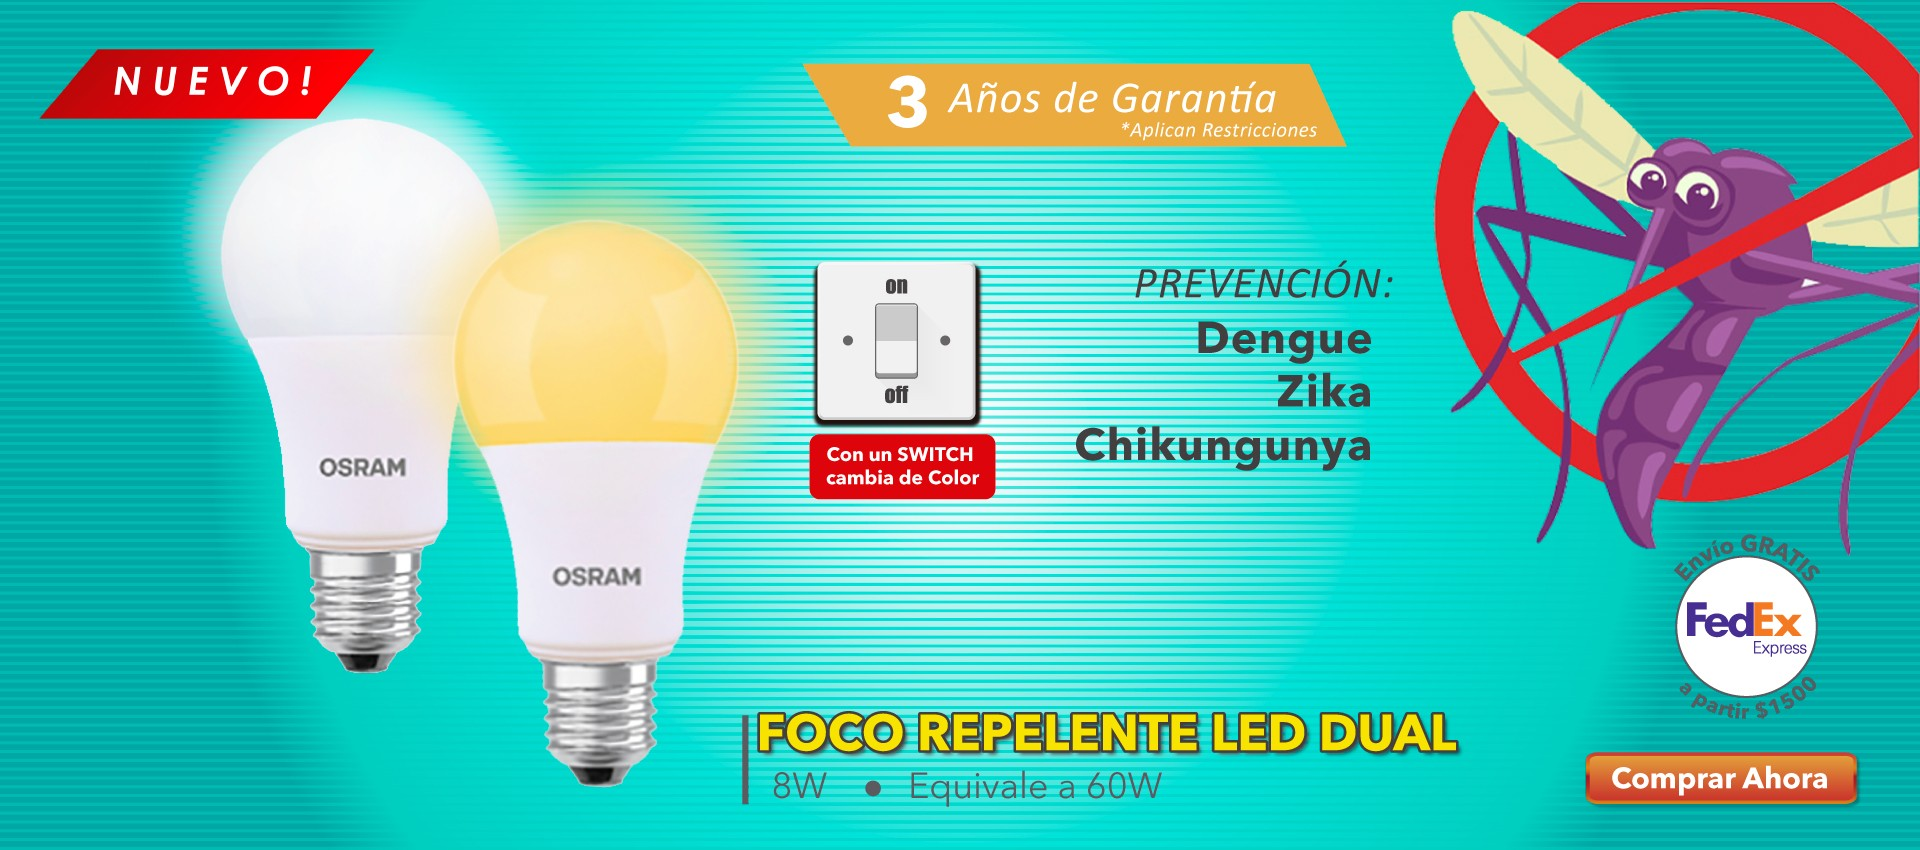 Foco Repelente LED Dual